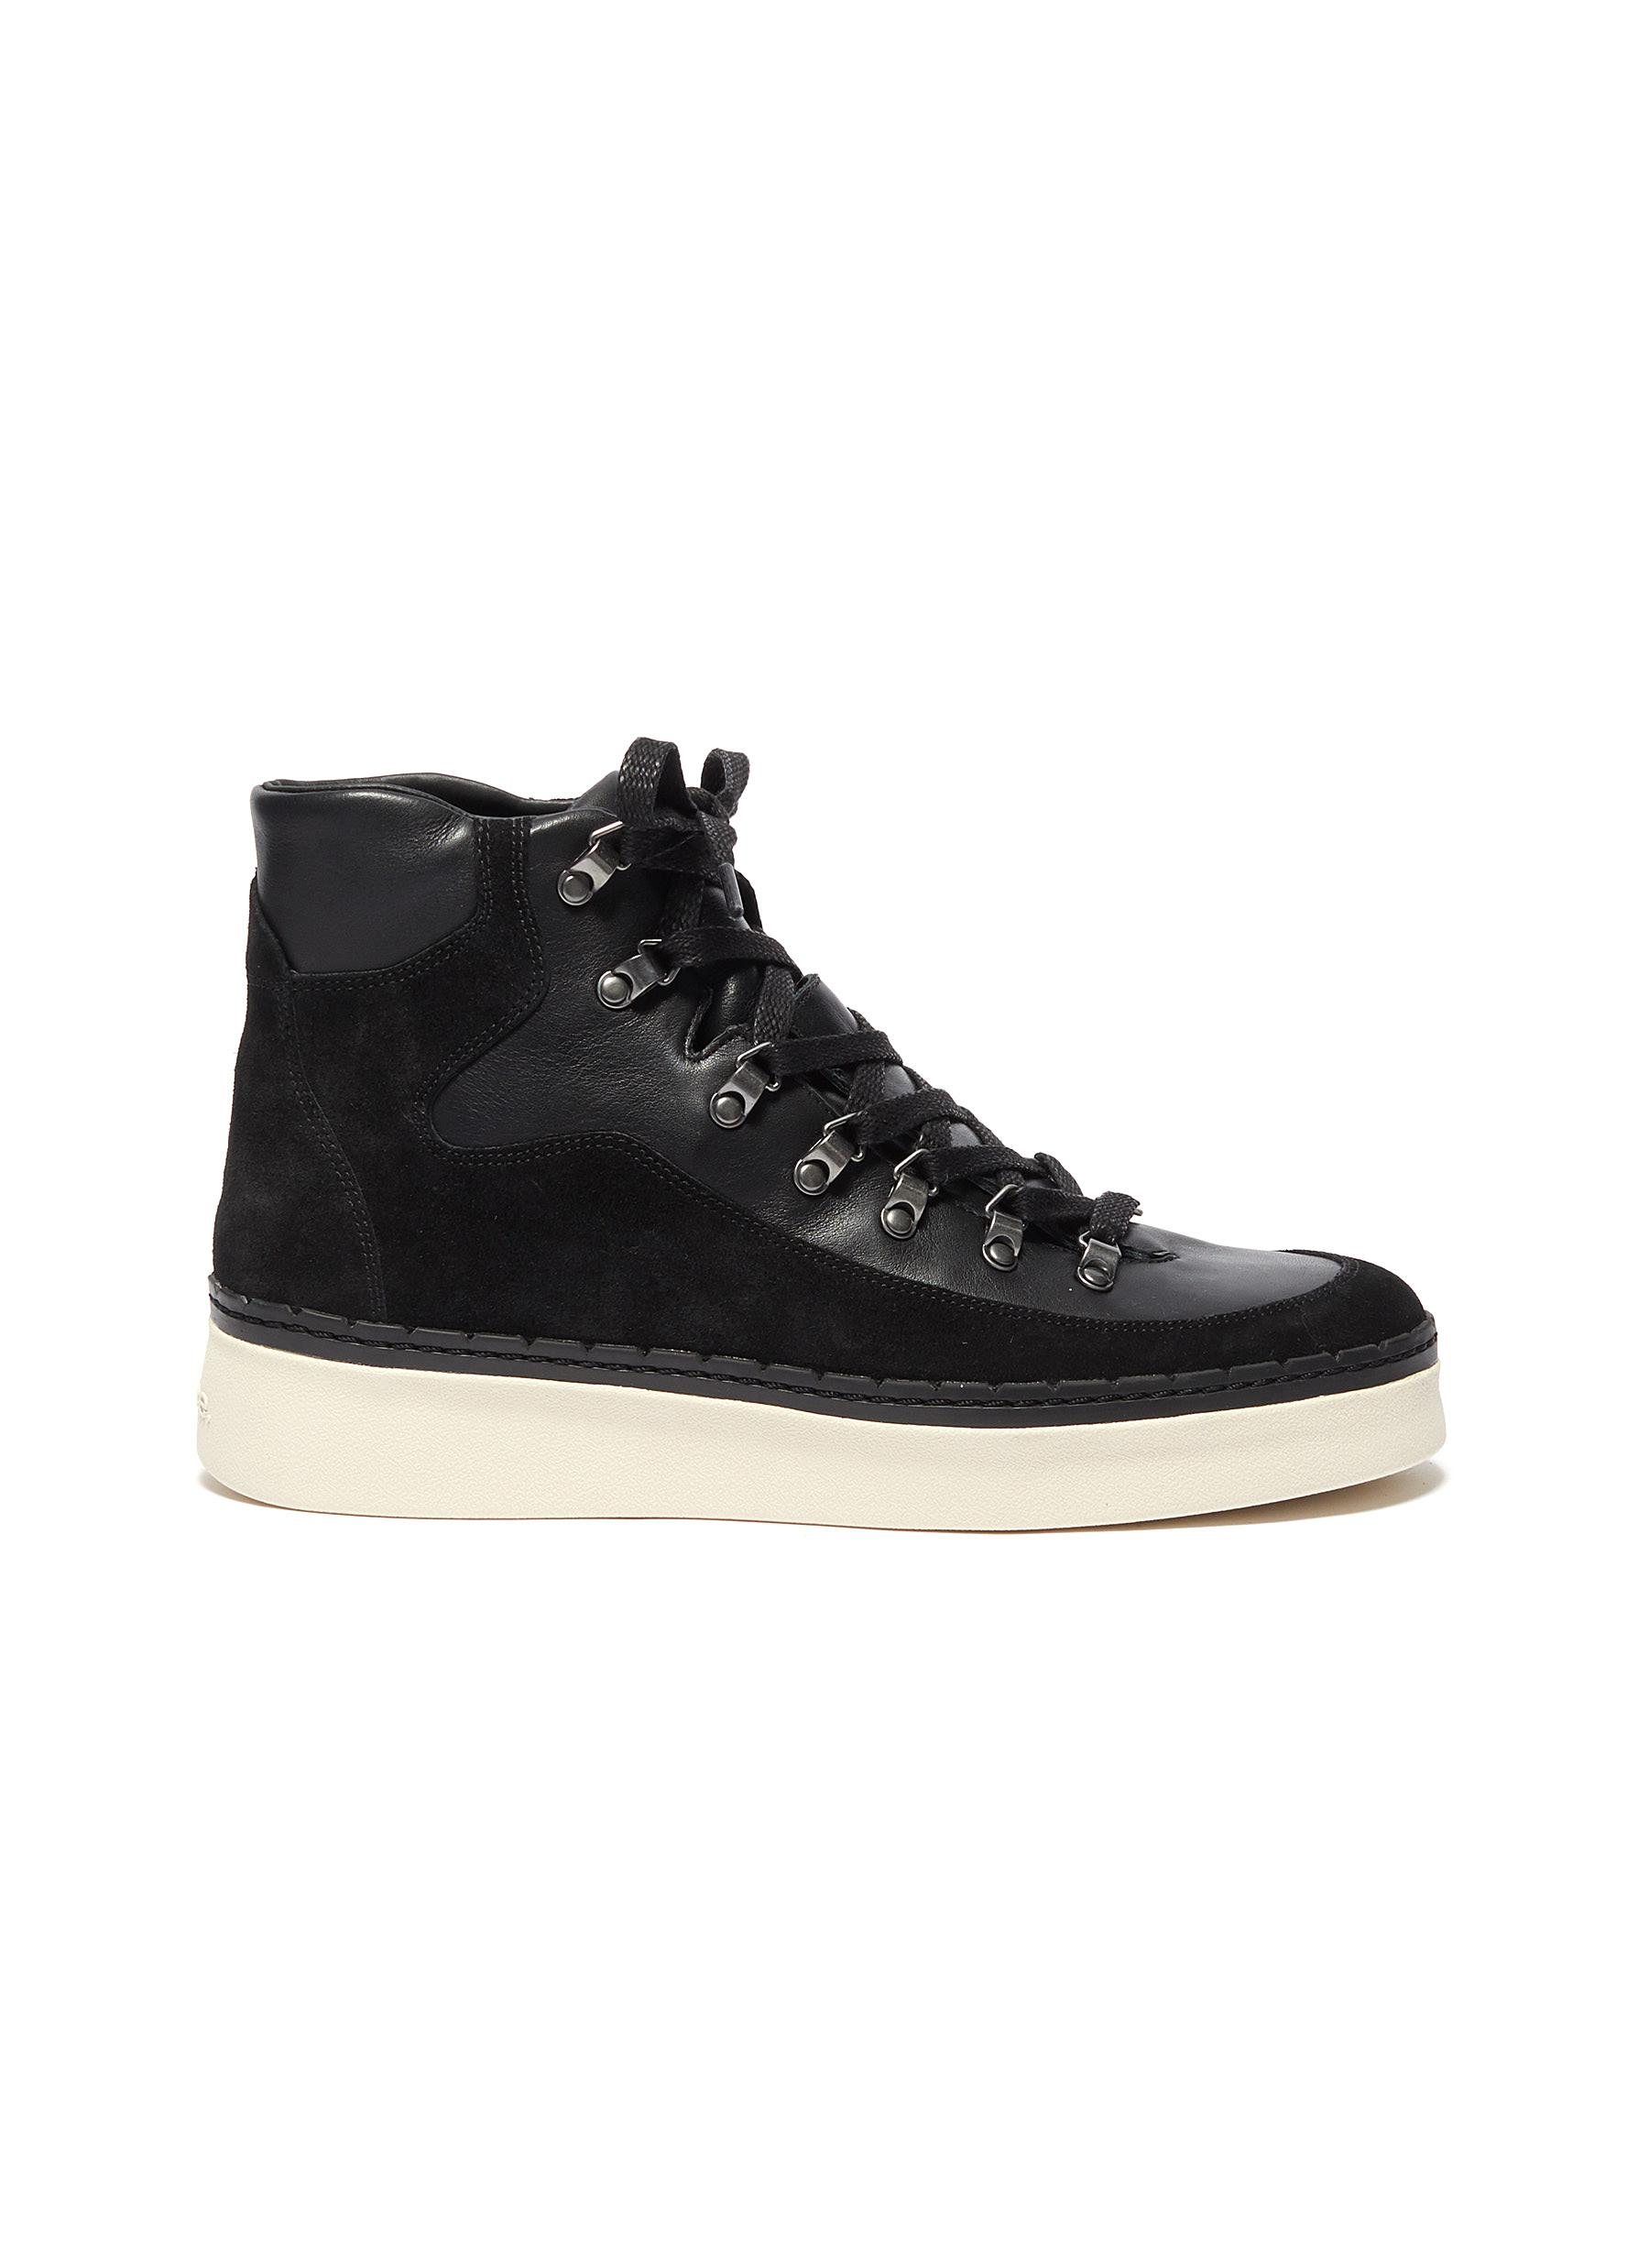 Vince Boots Soren Lace Up Suede Leather Ankle Boots